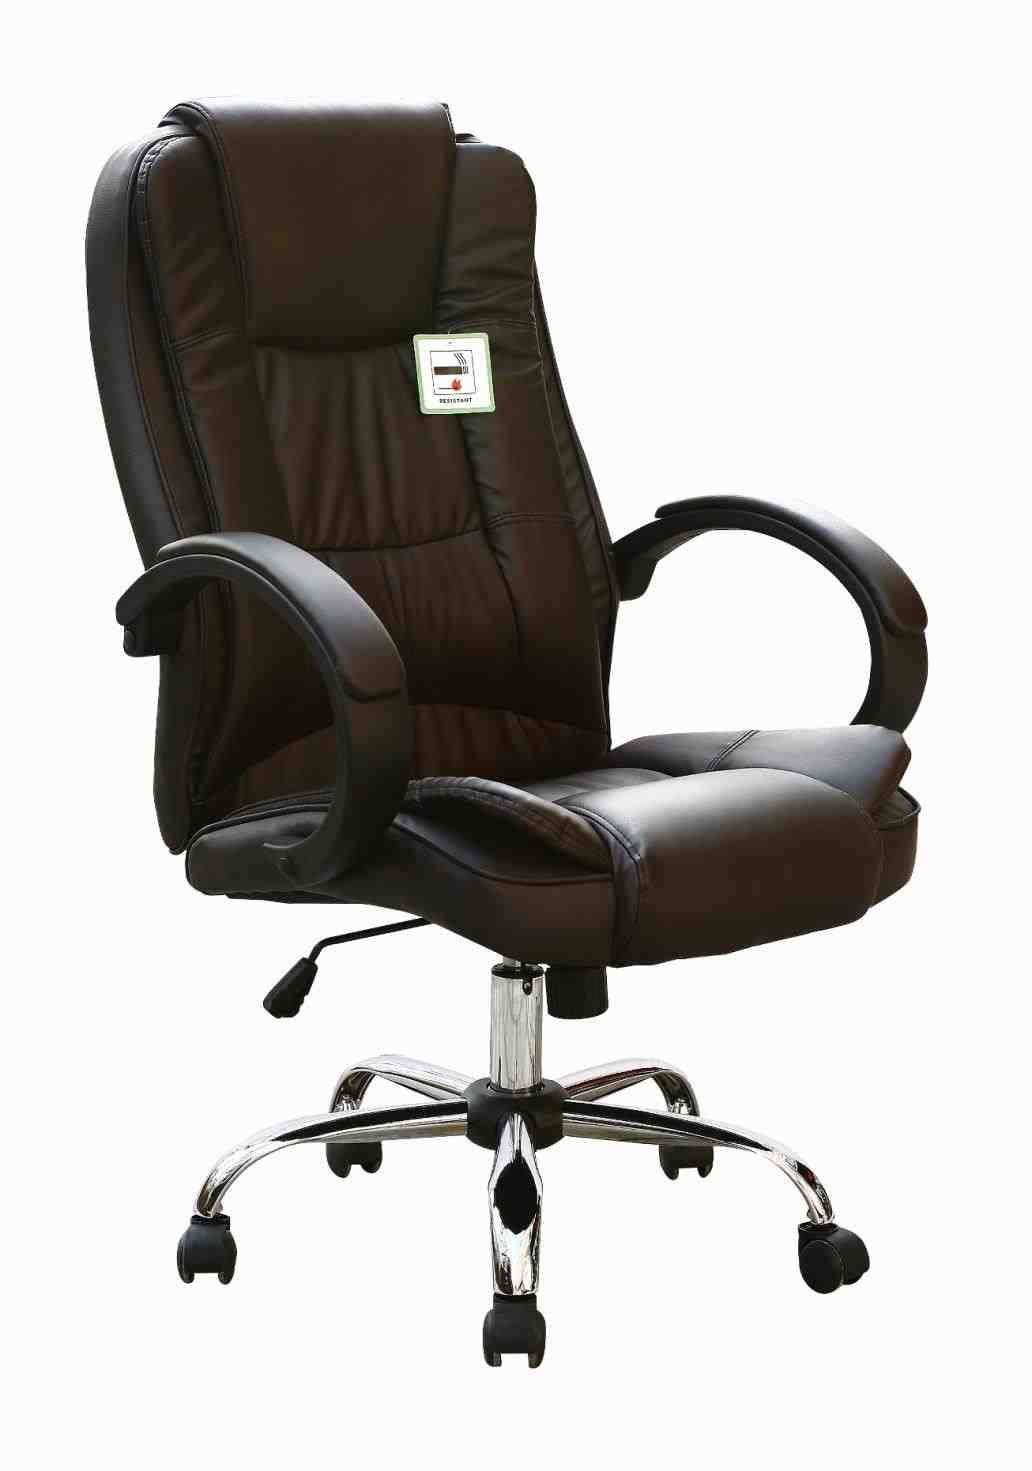 Cheap Office Chairs Singapore With Images Adjustable Office